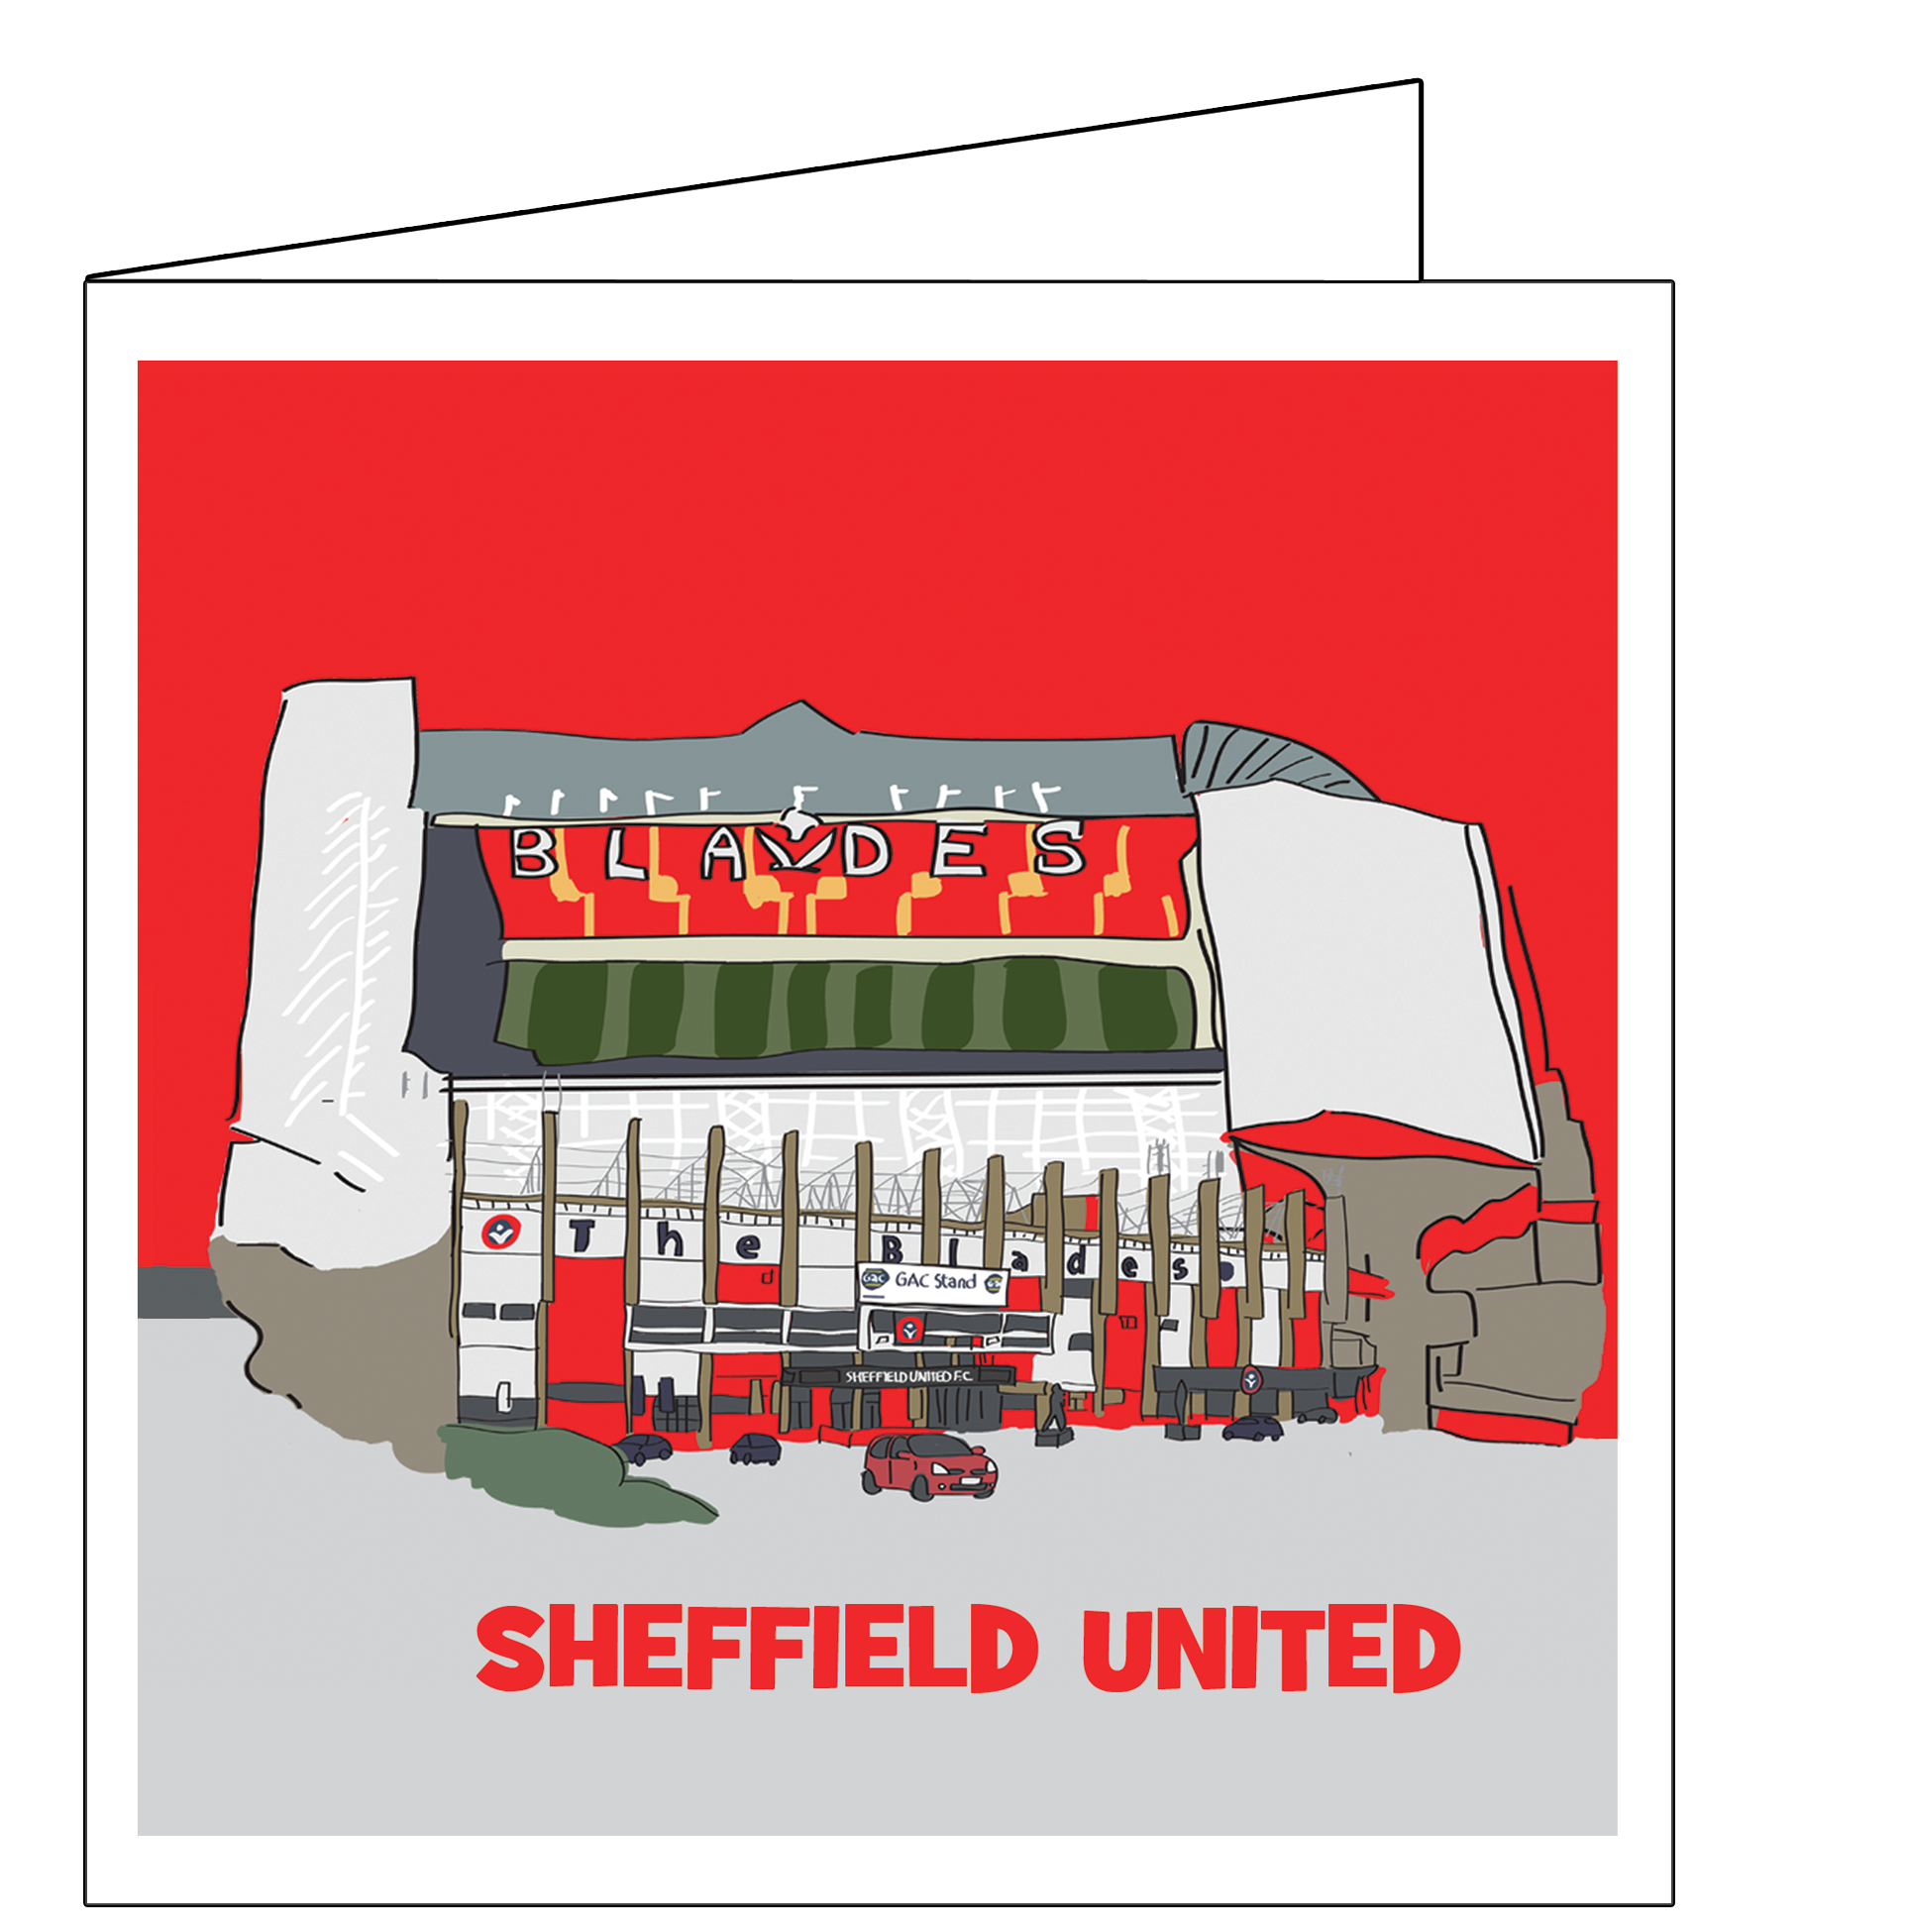 Addresses of: Sheffield United Football Club Shop Sheffield. Department and chain stores. A F Dobson Ltd. Sheffield. Department and chain stores. Cater Choice. Sheffield. Department and chain stores. Intec Office Systems. Doncaster. Department and chain stores. Worrall Business Supplies.